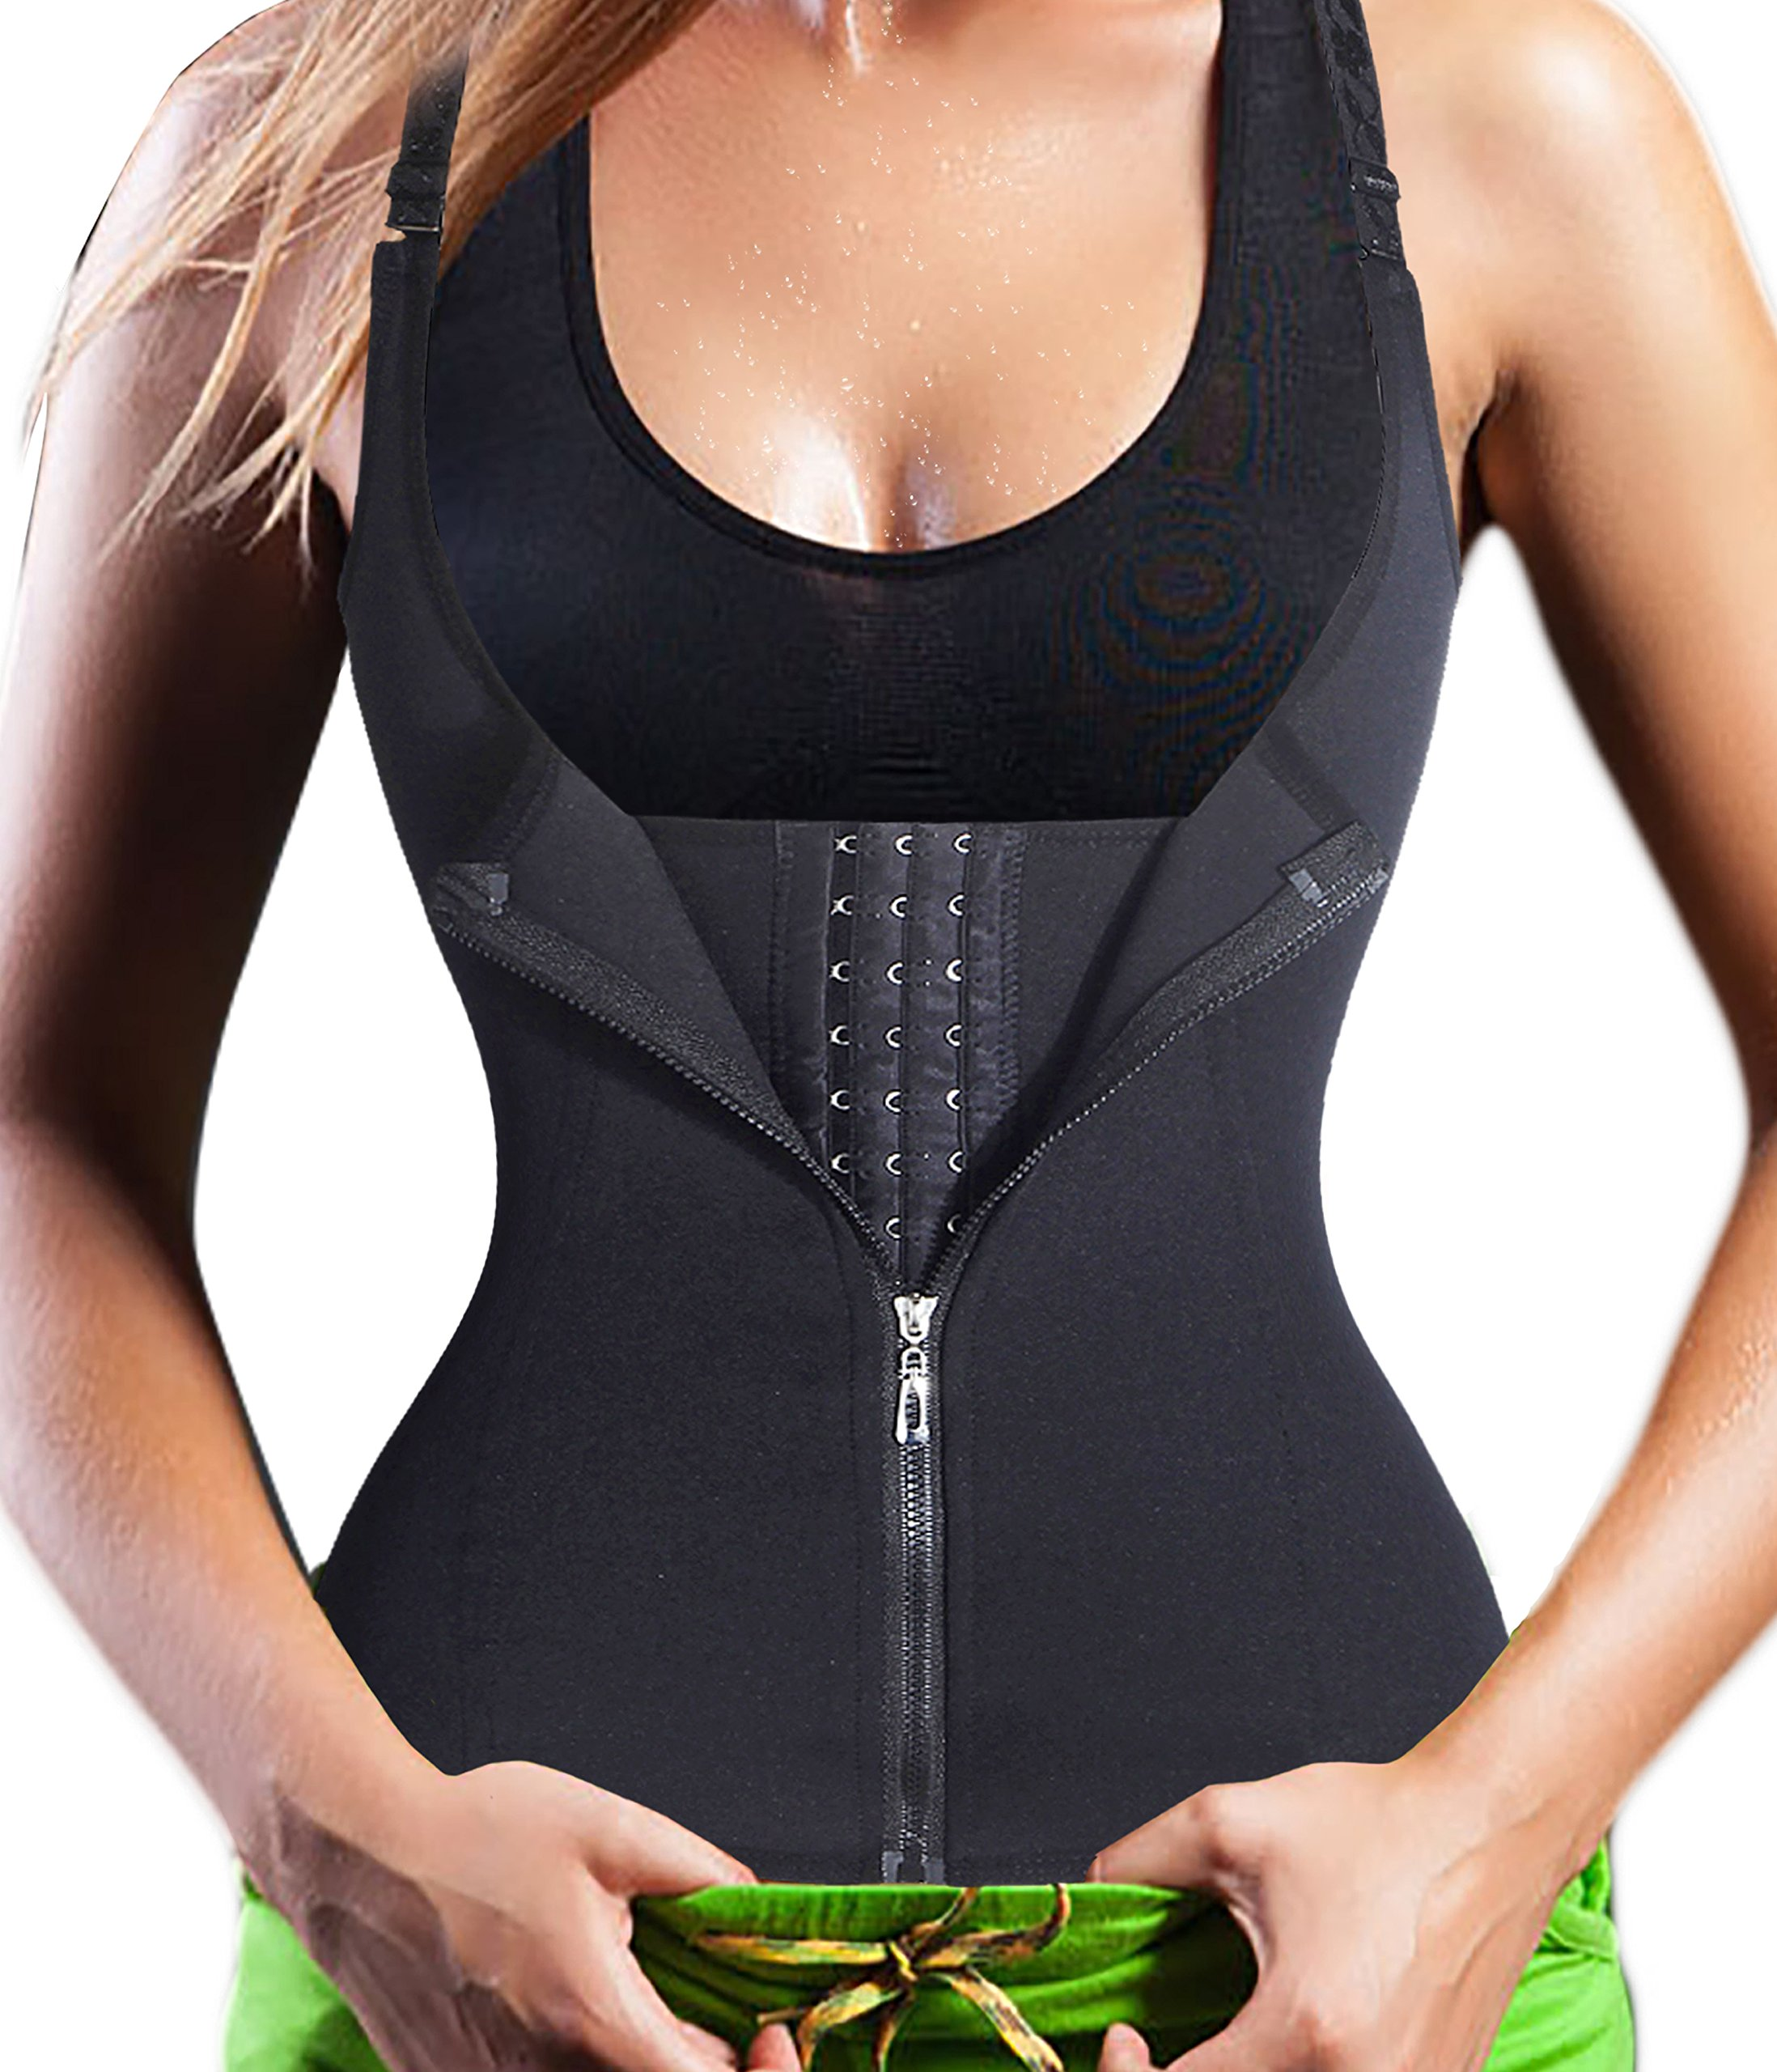 Smooth the Abdomen,Gotoly Adjustable Straps Body Shaper Waist Cincher Tank Top (XX-Large, Black)